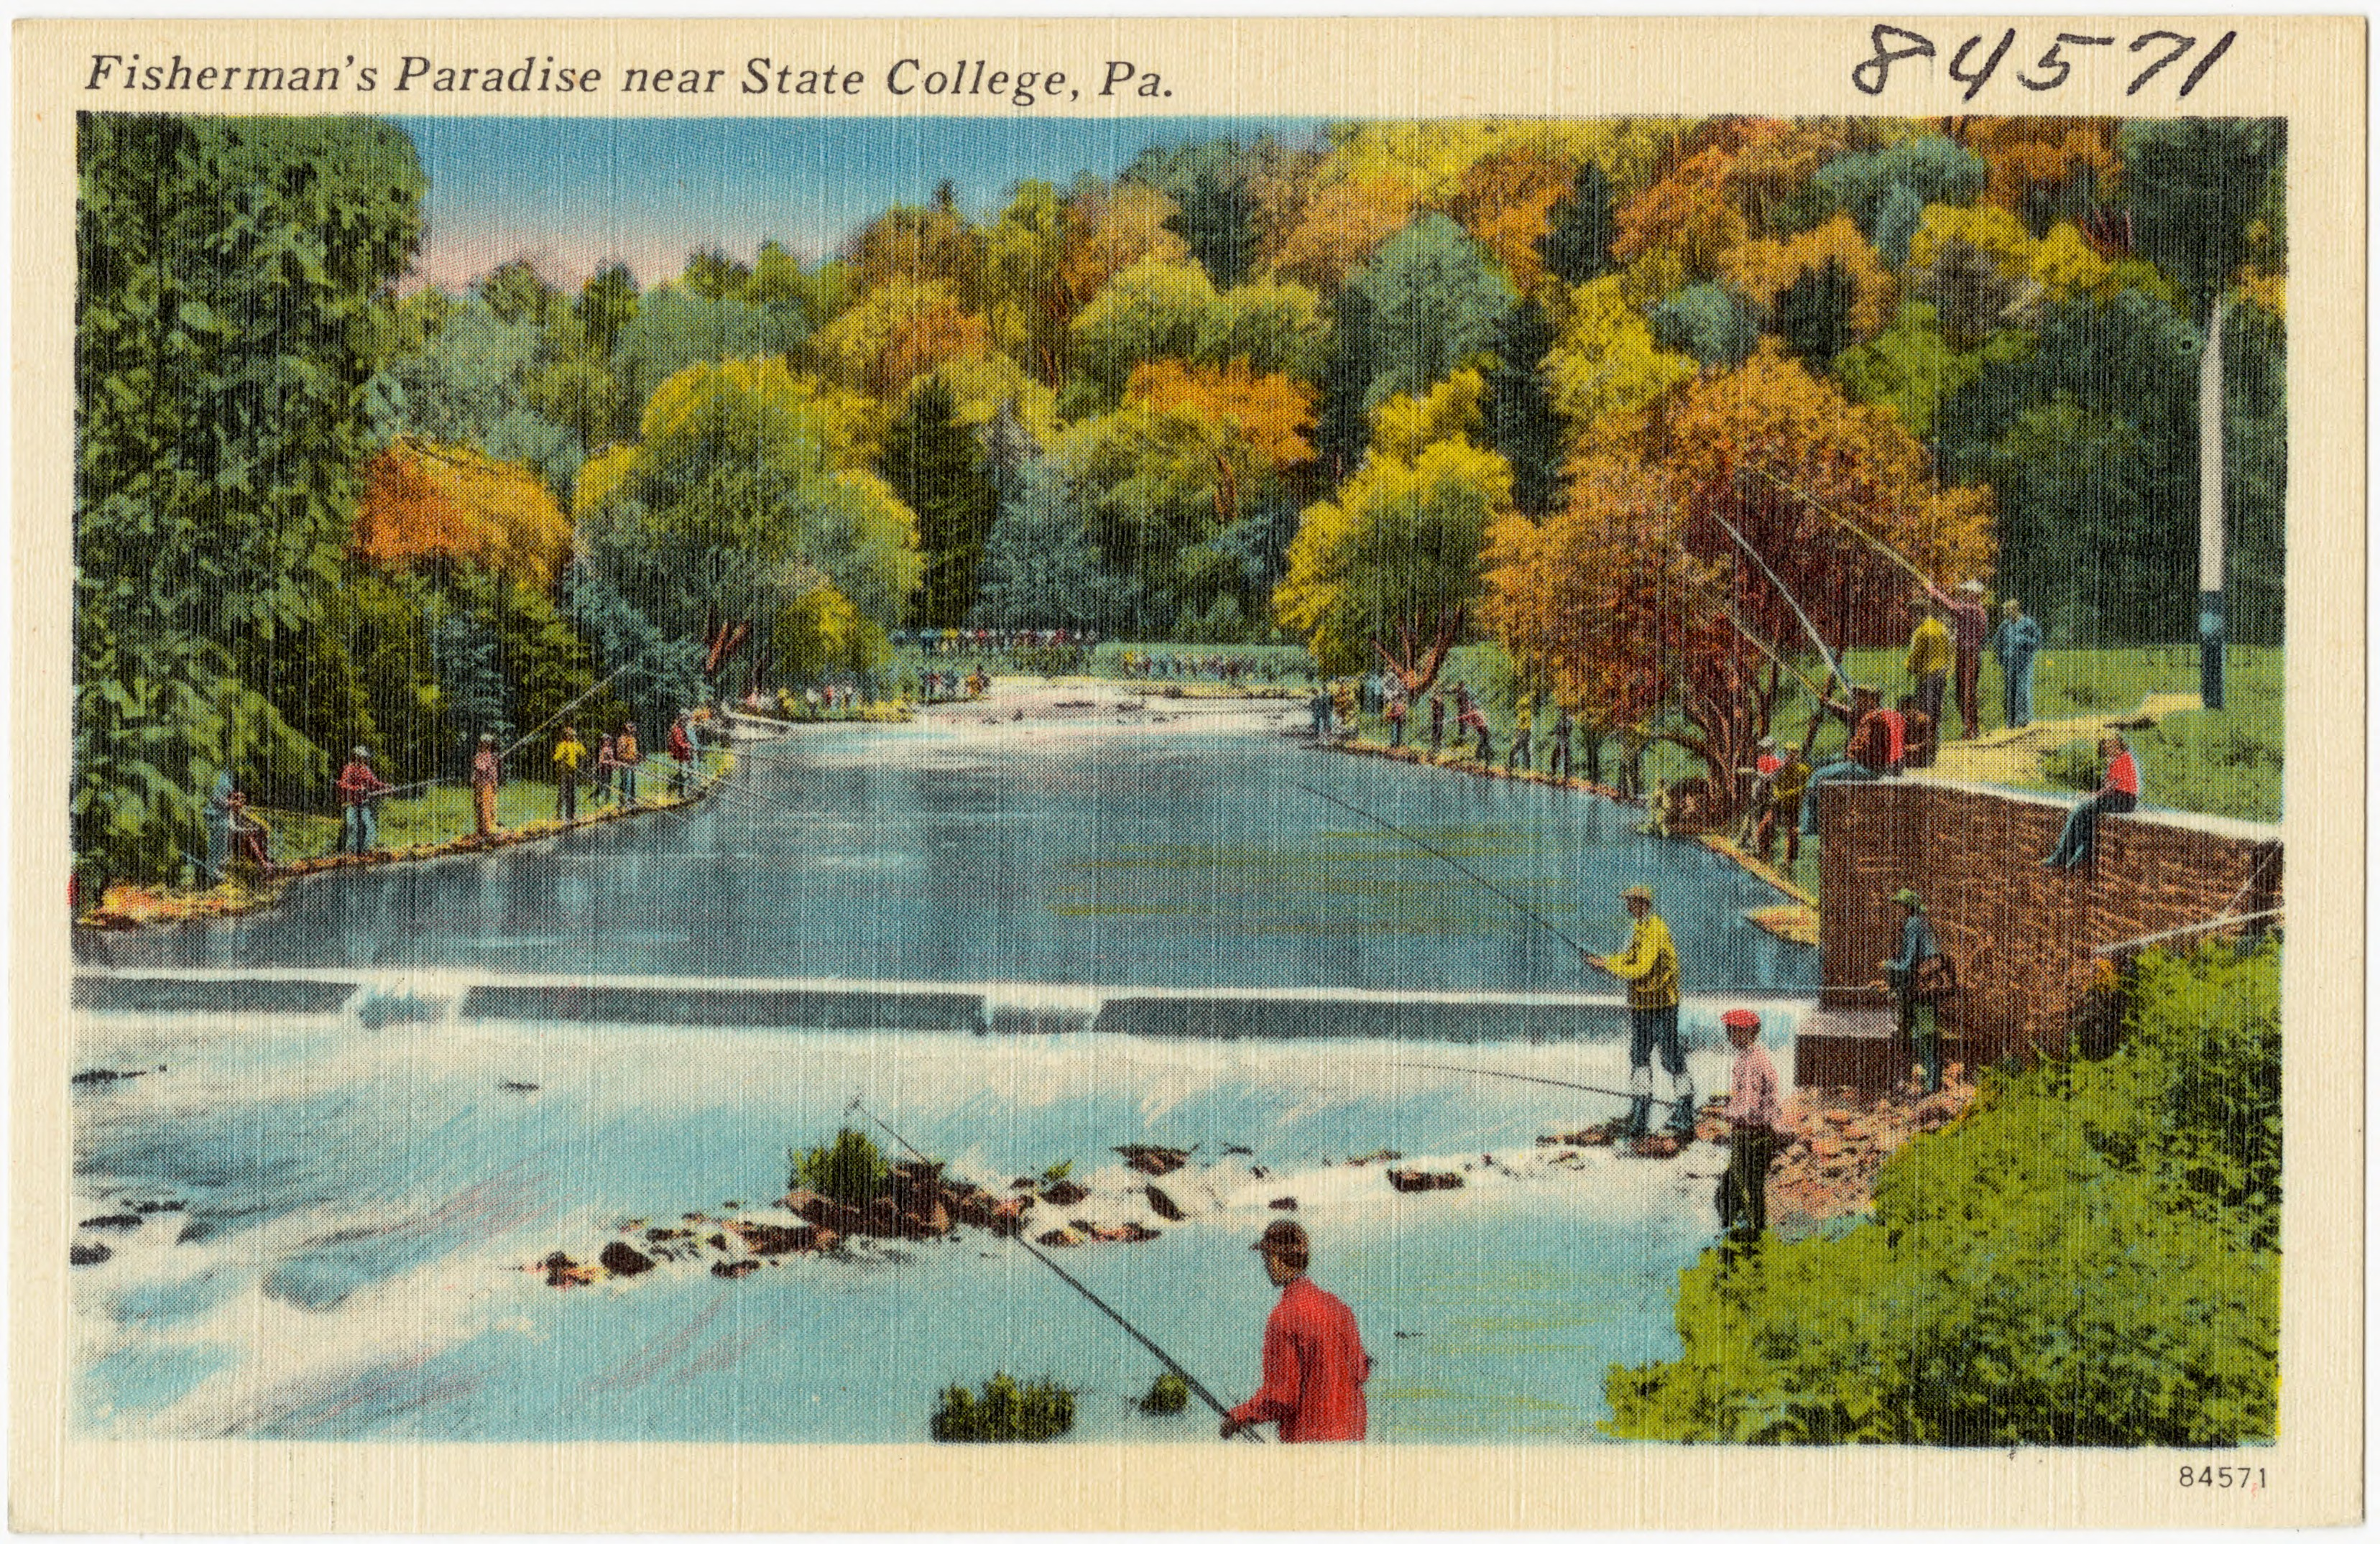 File:Fisherman's Paradise near State College, Pa (84571 ...